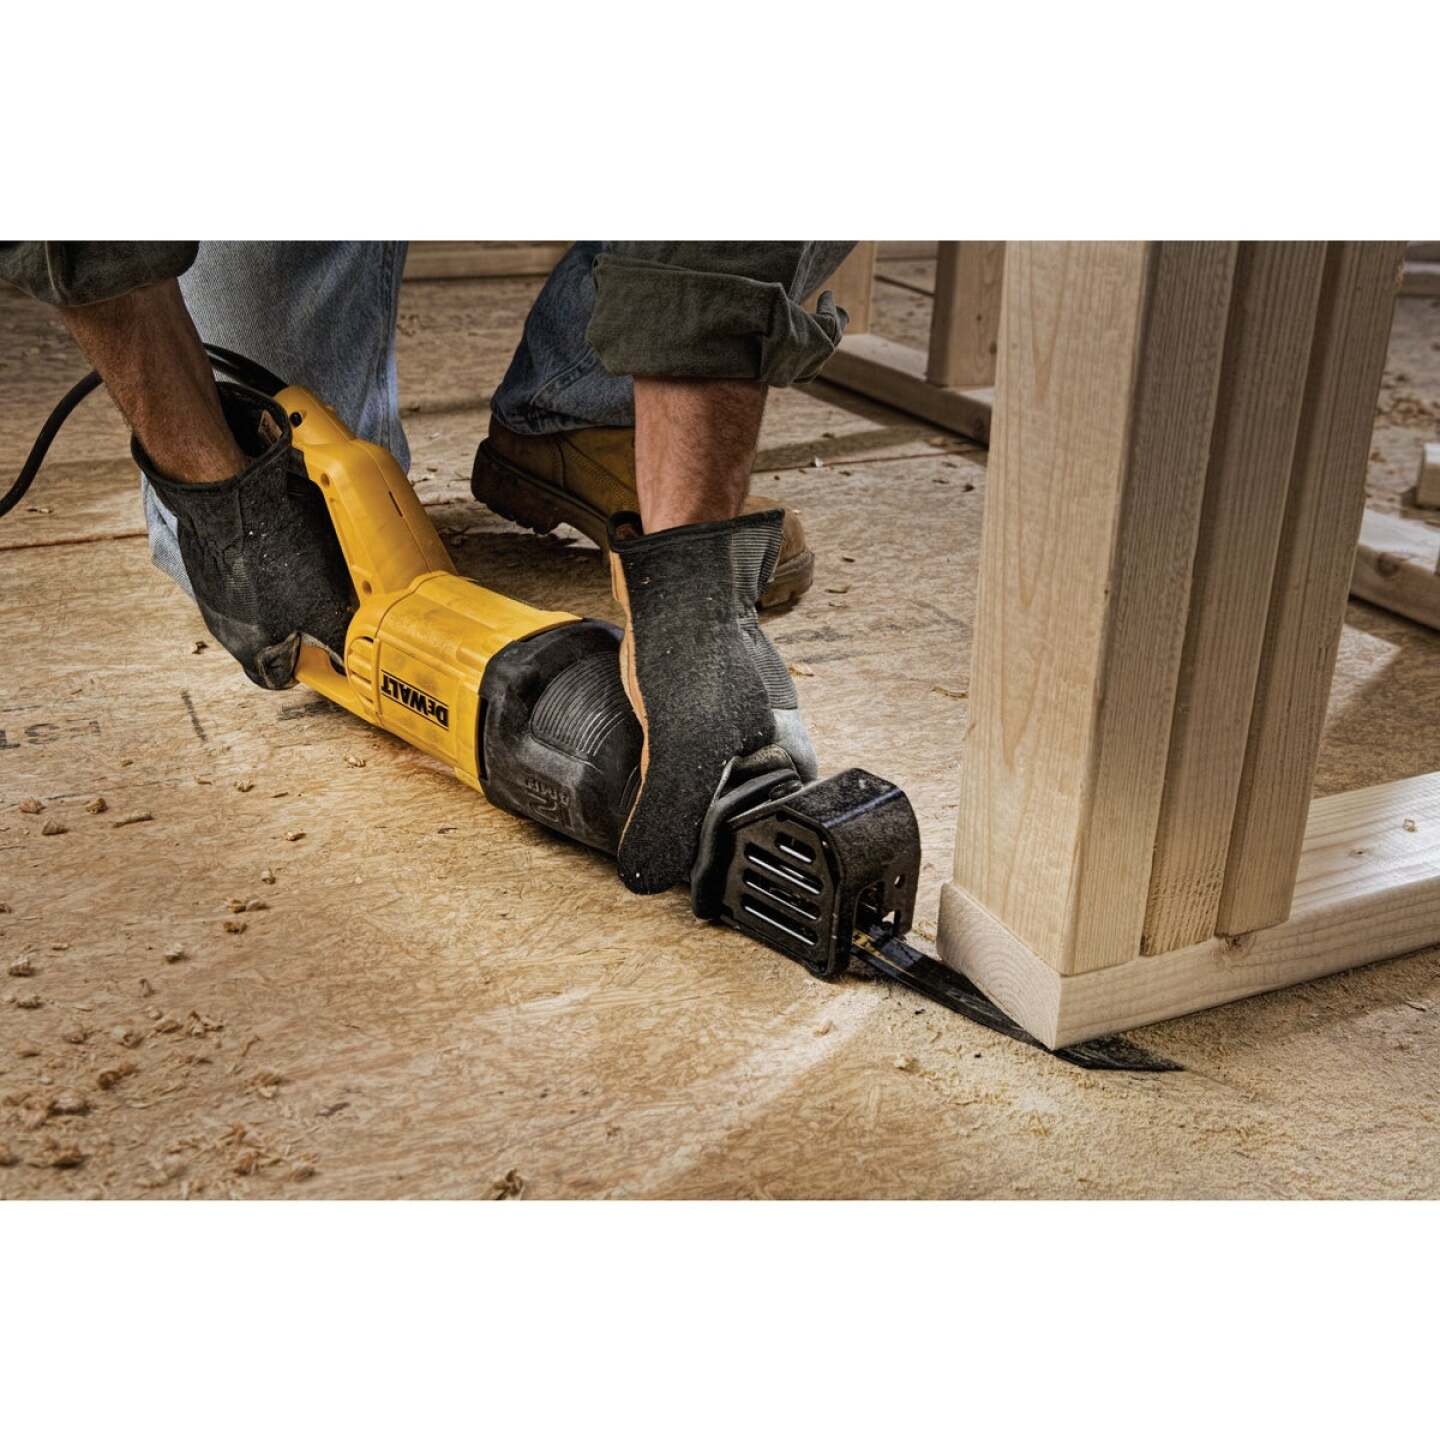 DeWalt 12-Amp Reciprocating Saw Image 3